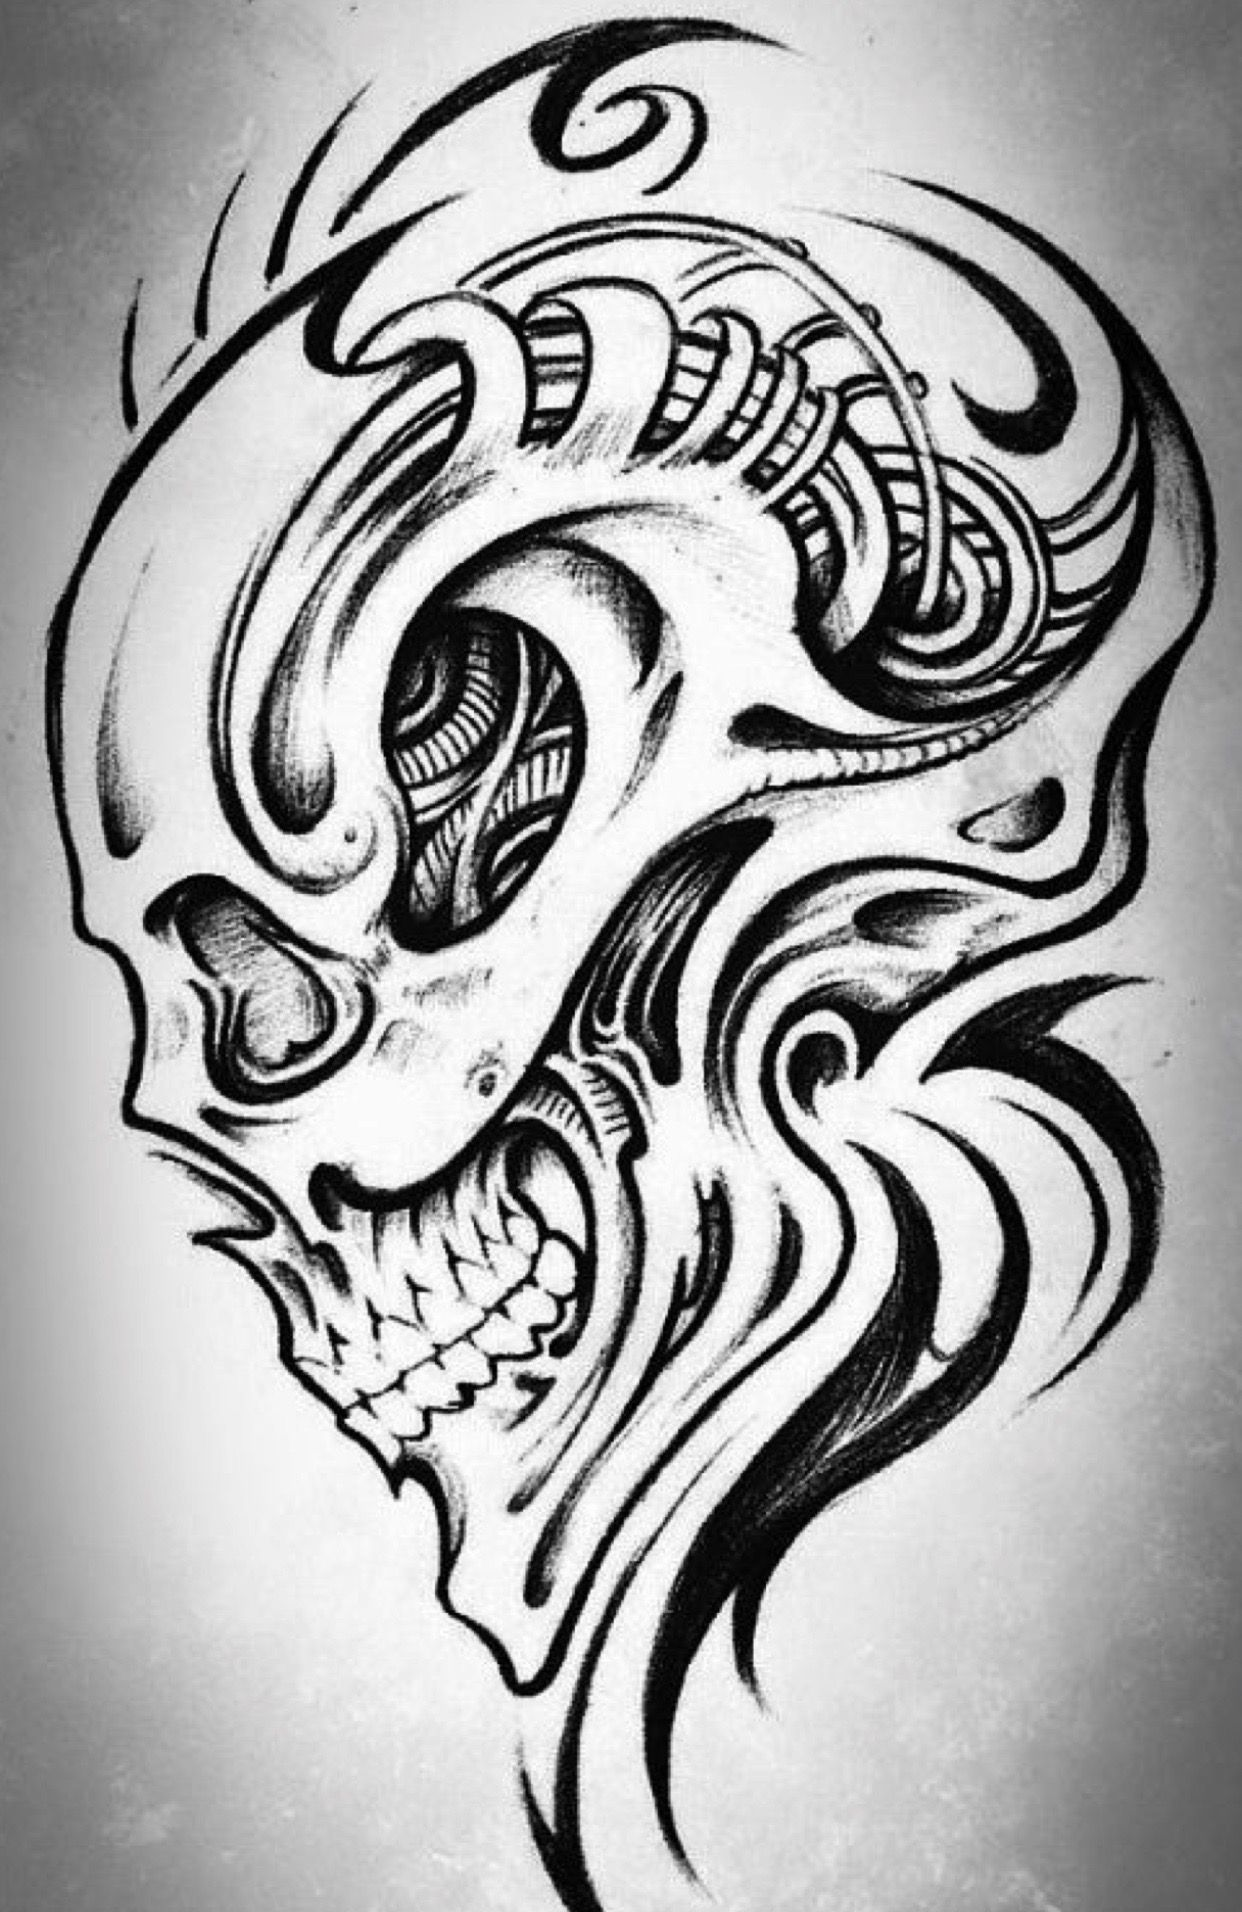 Pin by Thomas Rohrhofer on Pencil Drawing | Skulls drawing ...